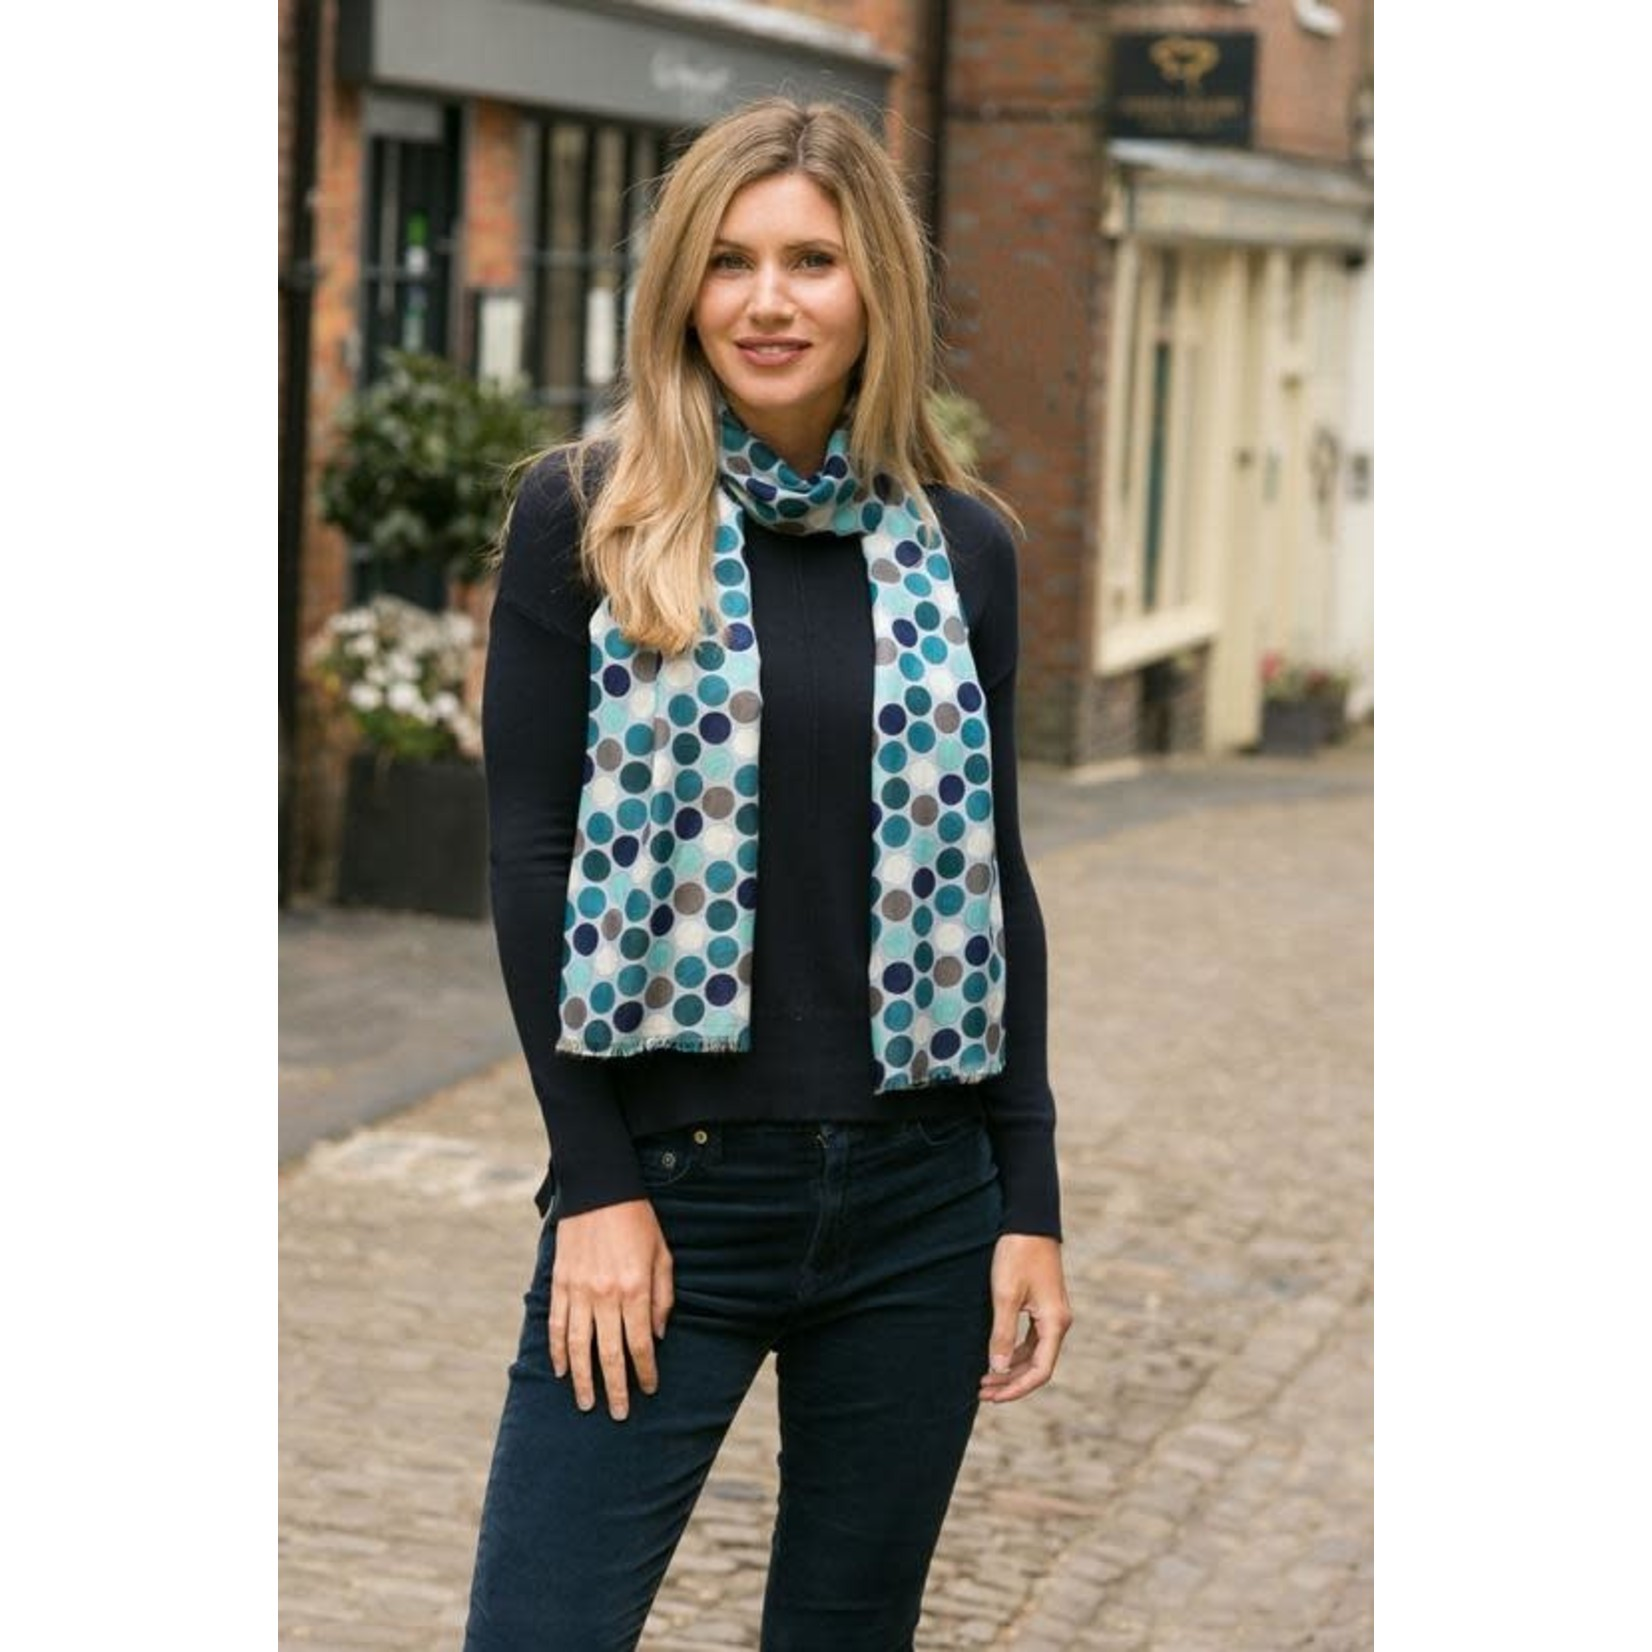 Peony Accessories Jenny Spot Scarf in Blue